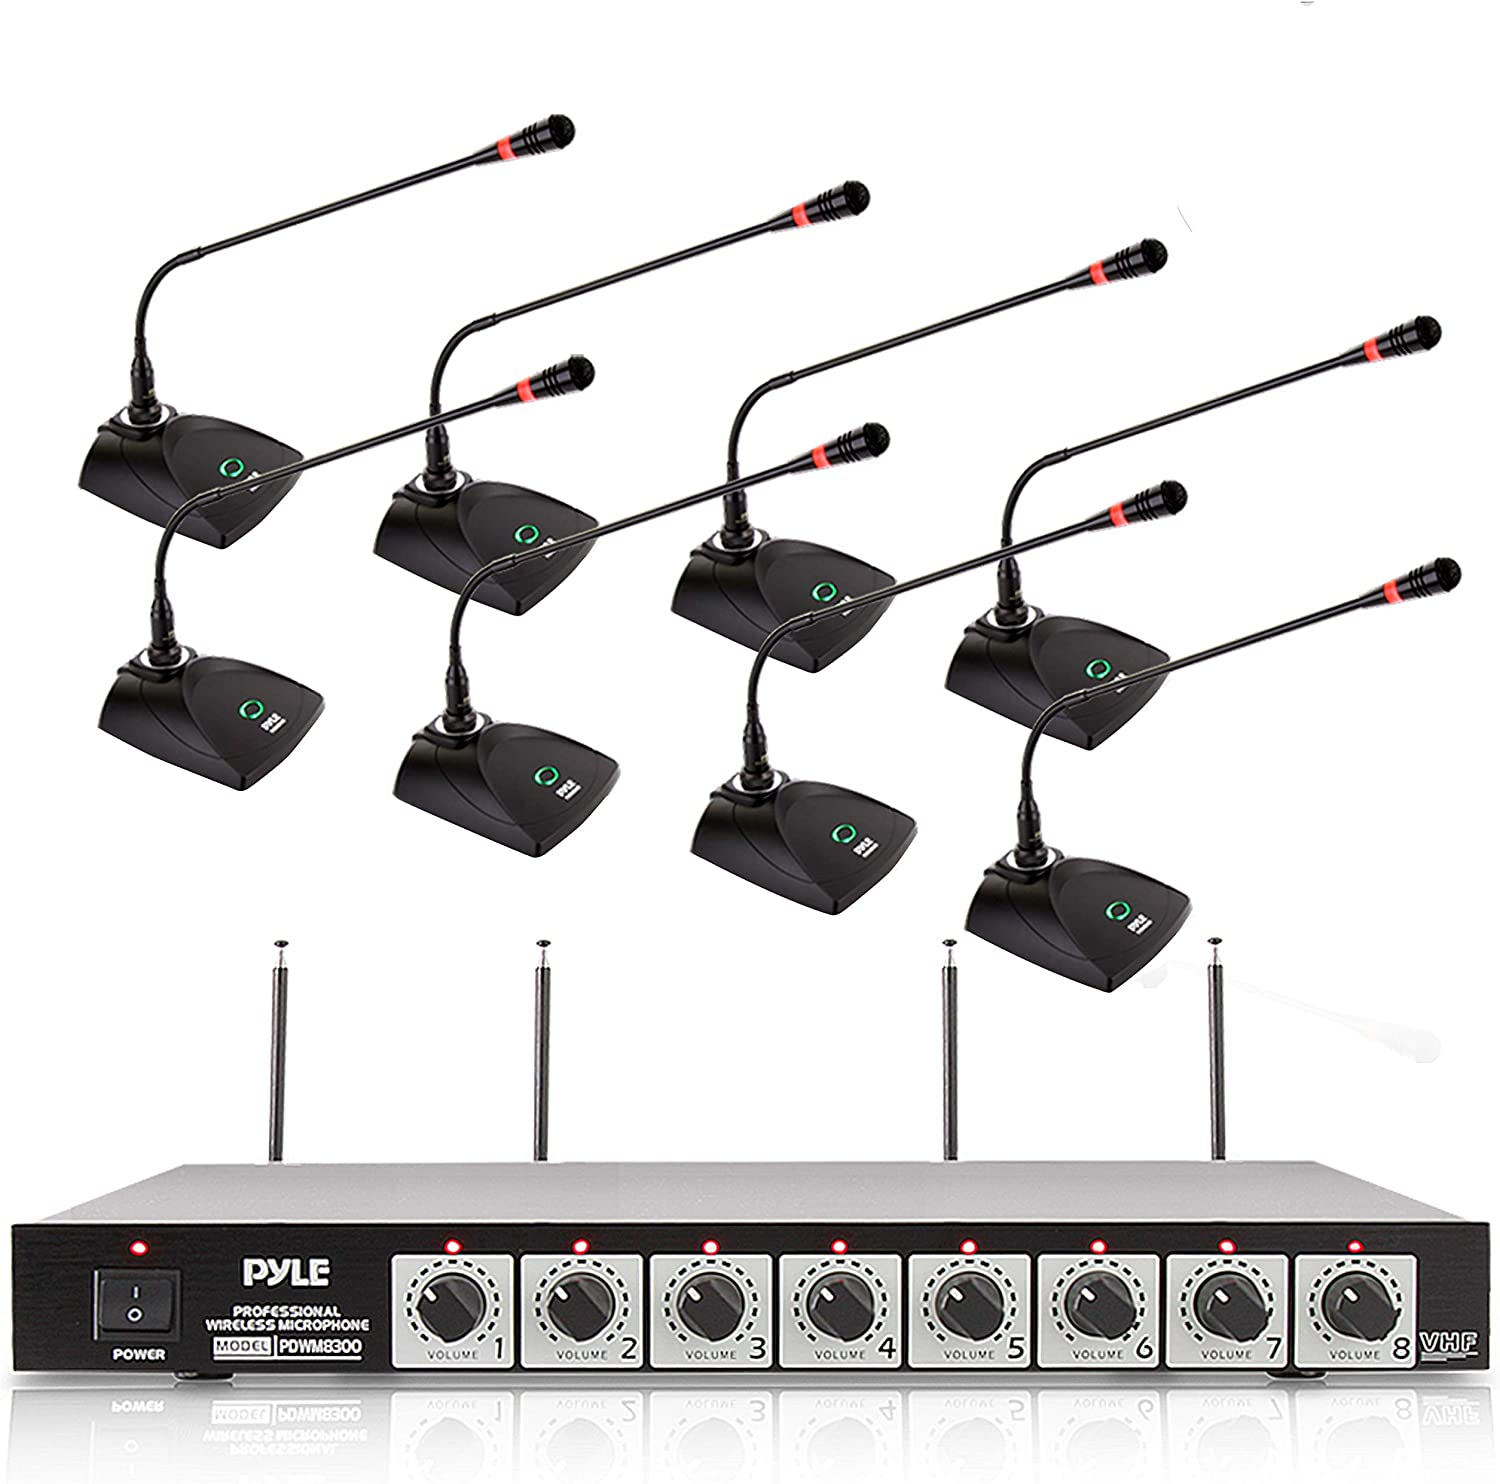 8 Channel Conference Microphone System - UHF Desktop, Table Meeting Wireless Microphones & Receiver w/ 8 Gooseneck Mics, Rack Mountable & LED Audio Signal Indicator Lights - Pyle PDWM8880